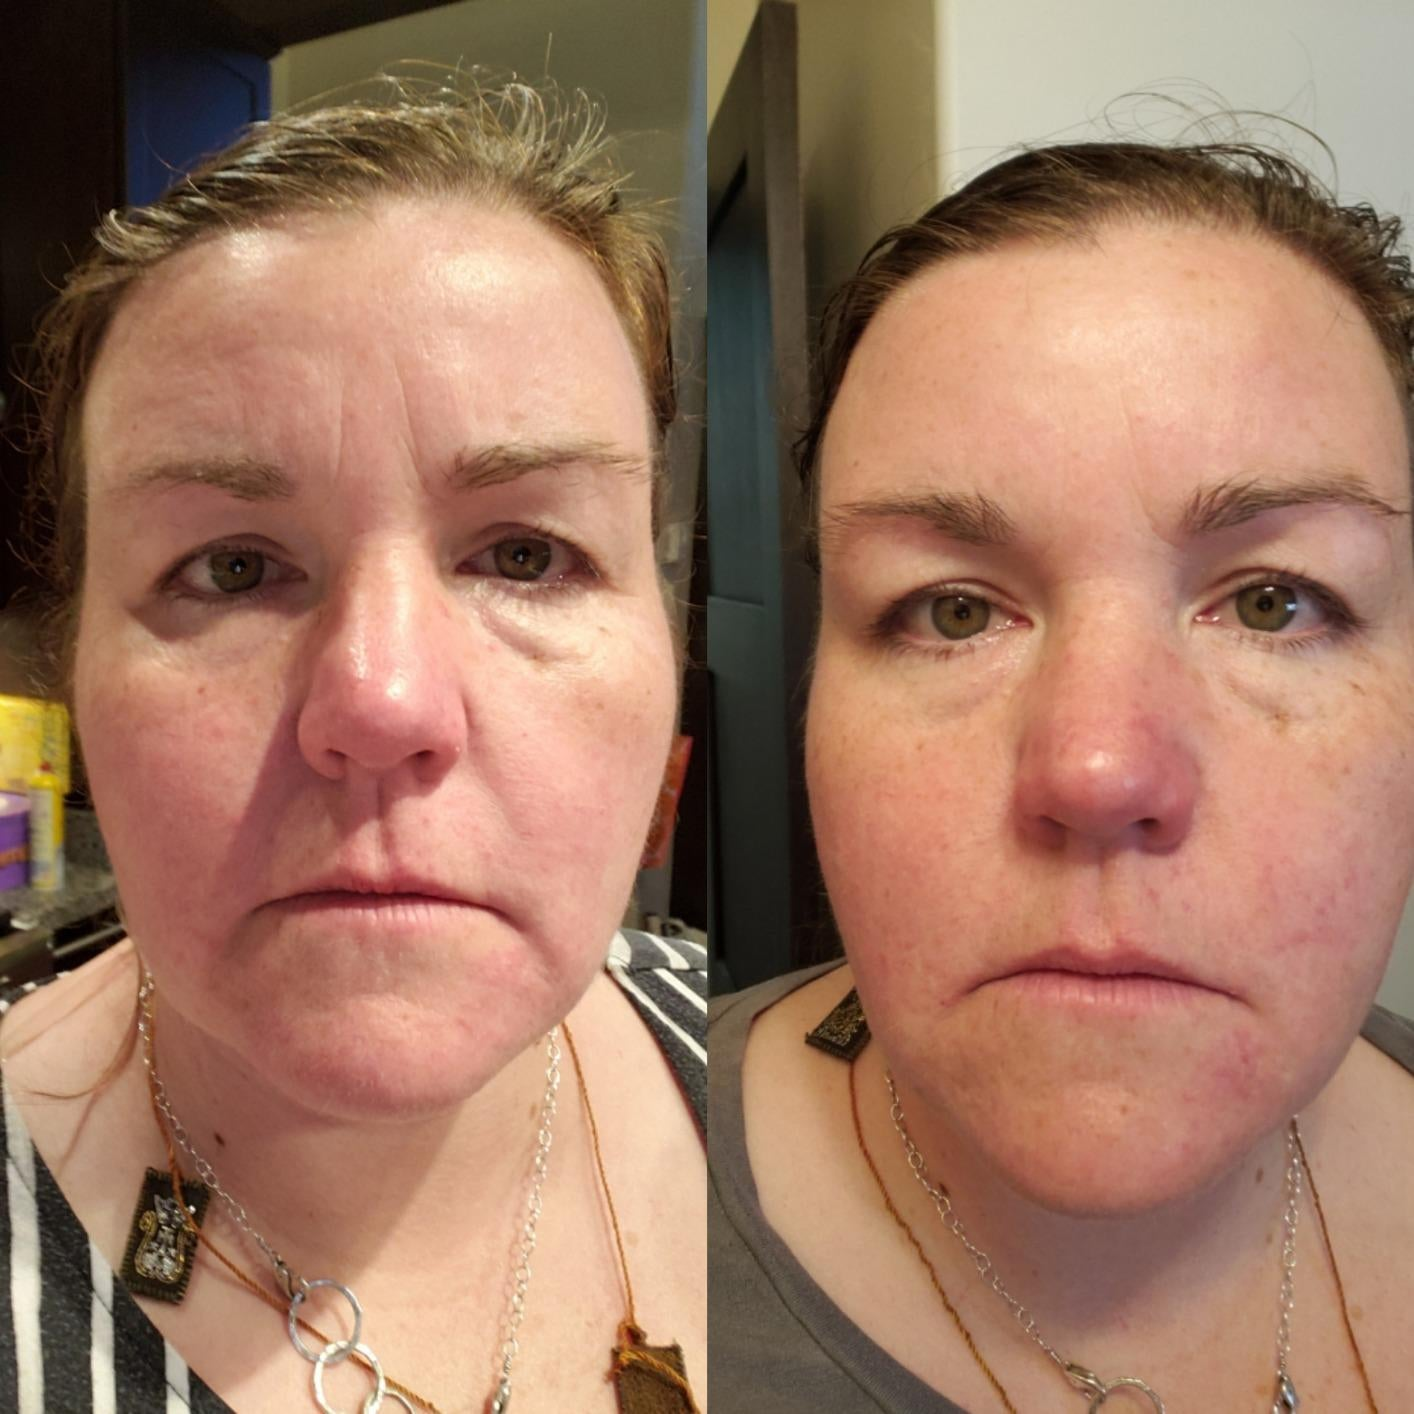 before and after showing the cream reduced the reviewer's wrinkles and made their face look plumper